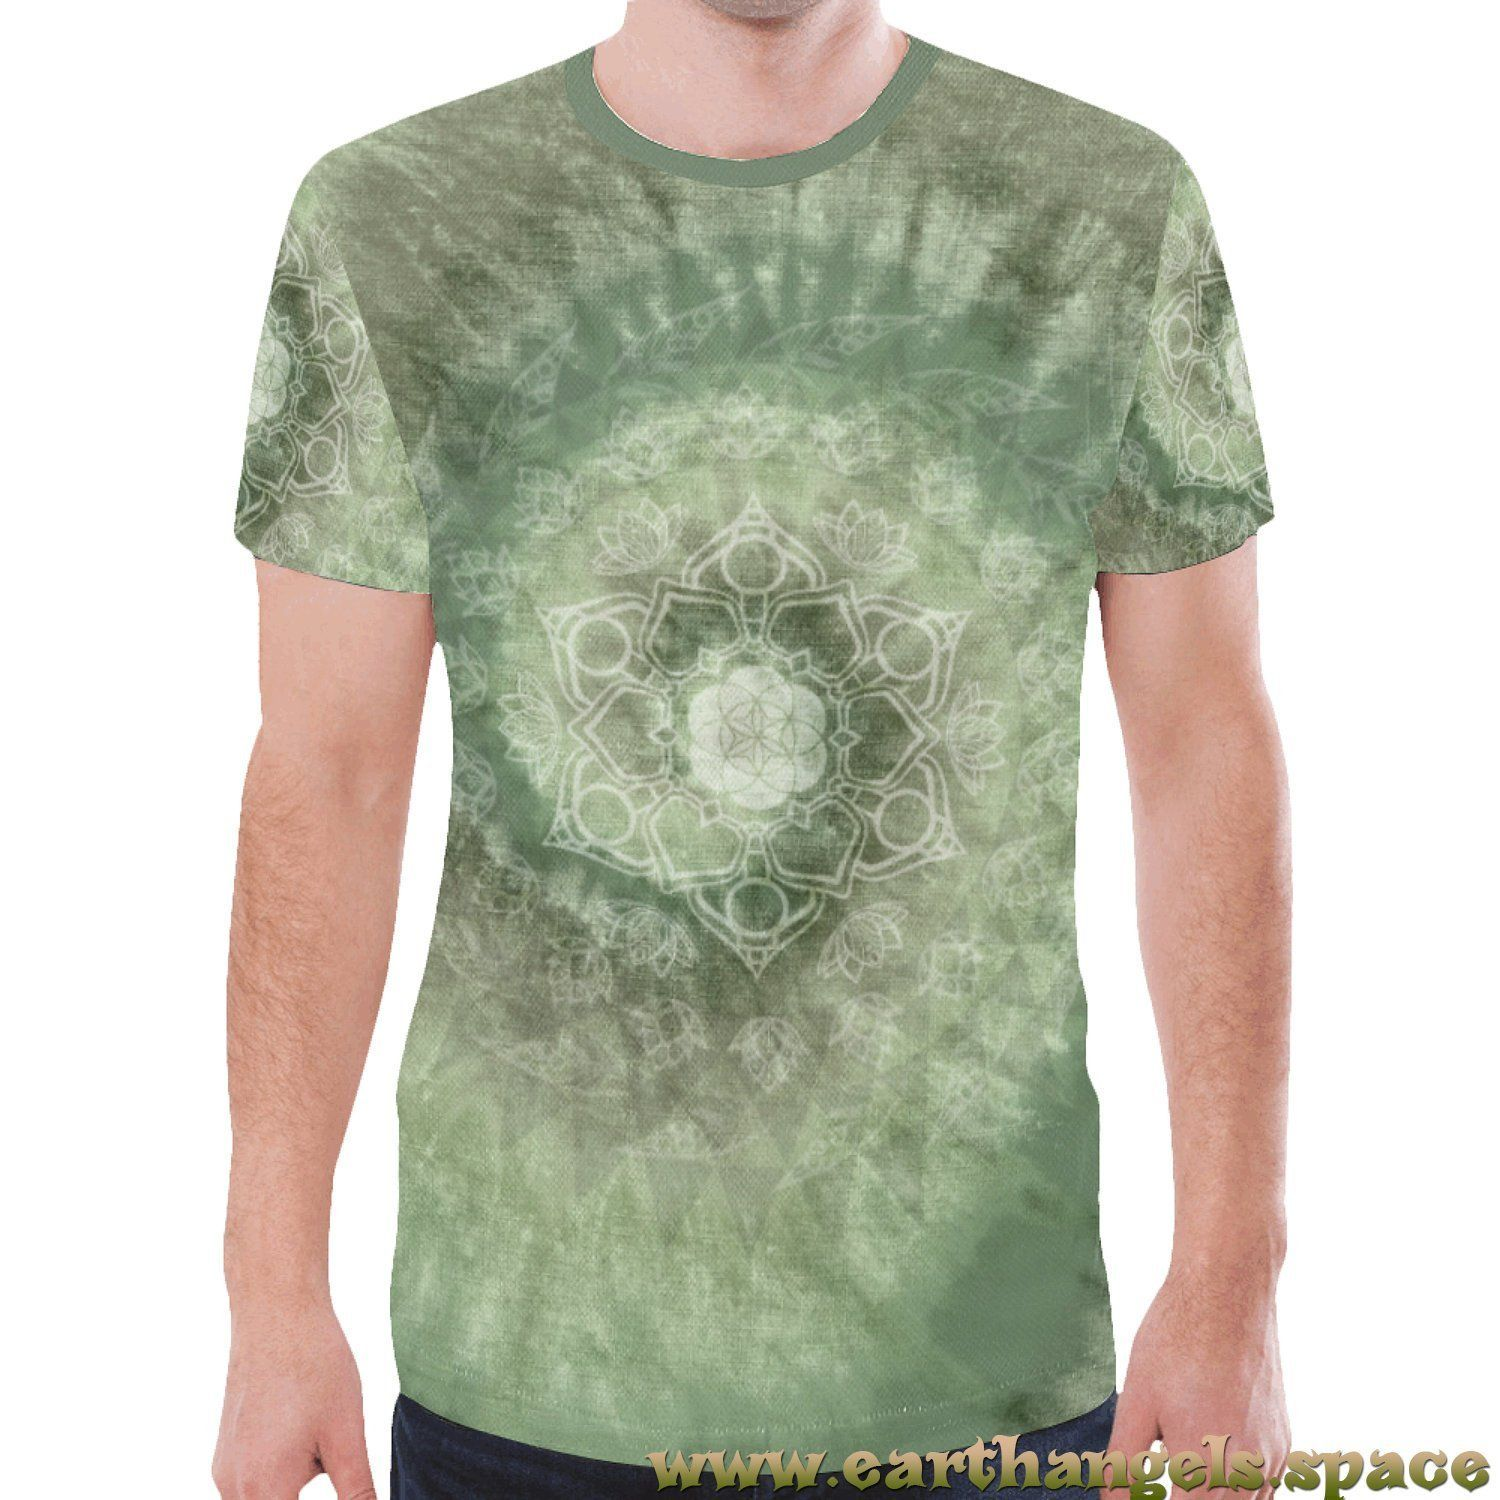 TIE DYE HIGH Psychedelic Tshirt Men Hippie Clothes Men Psychedelic Clothing Men Sacred Geometry Clothing Men Hippie Clothing Goa Clothing is part of Hippie Clothes Mens - One of a kind designed earthy Tshirts for men  power up with our earthy designs, all printed beautifully with the latest sublimation techniques; these shirt will last you a lifetime without losing their design or fading!                All items are made to order within 37 business days  Items are shipped straight to you from our factory in China  Peace of mind with the highest production standards in the industry                Special FREE delivery to customers in the USA  710 business days (DHL+USPS to your door)  FREE International delivery to all countries (715 business days)  Optional DHL EXPRESS international shipping available at checkout (35 business days  please provide Telephone Number @ Checkout)               Made of 100% mesh cloth, this tshirt is durable, breathable and soft  • 7 05 Oz  100% polyester  • Doubleneedle hemmed sleeves and bottom  • Elastic neckband • Machine wash cold  The print on garment body is unable to fade